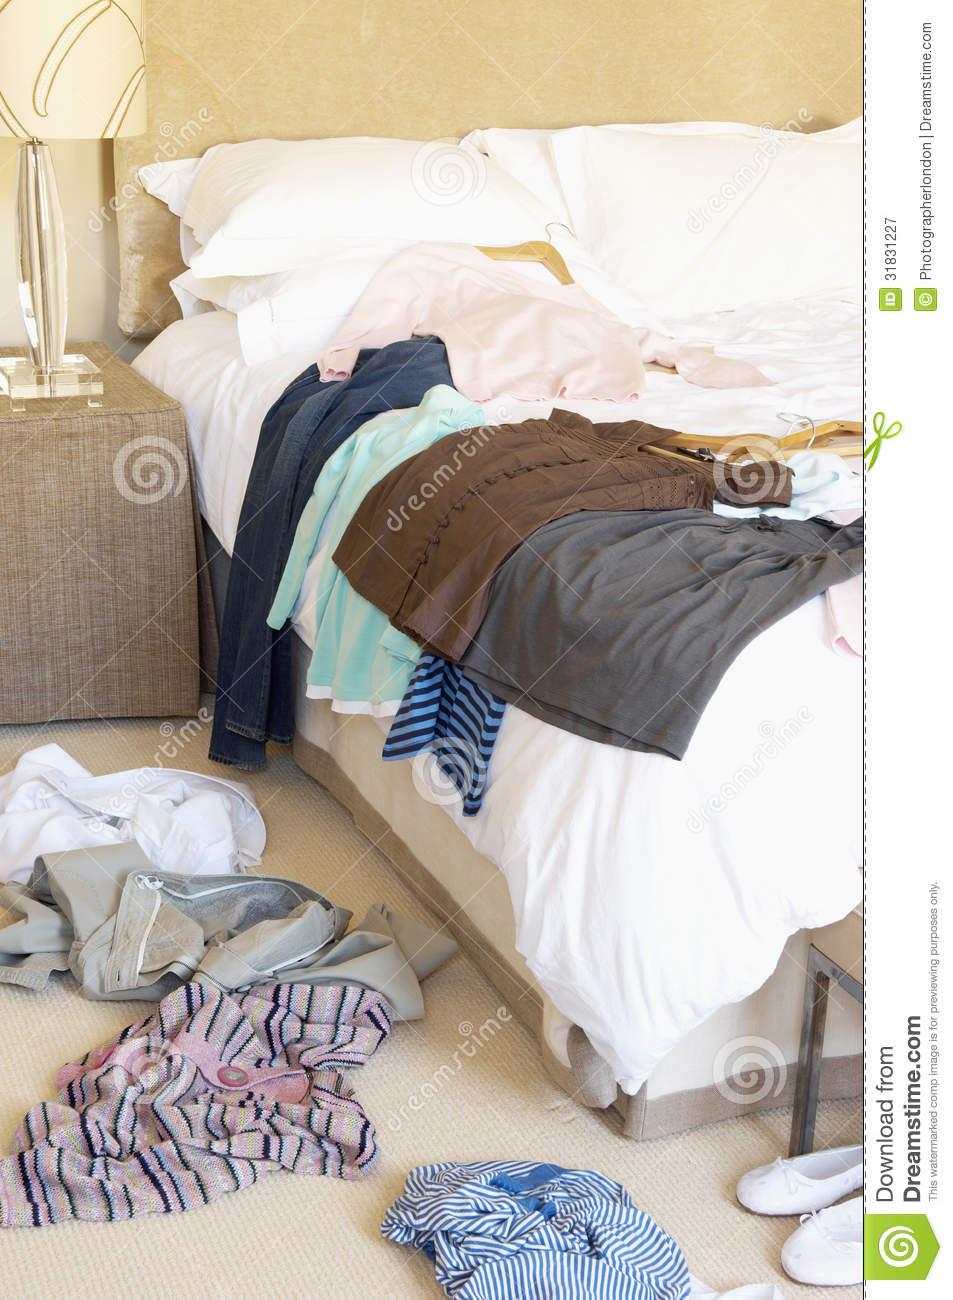 Laundering Items to Kill Bed Bugs .pdf) Washing clothes and bedding is a simple and cheap method of killing all bed bugs. It is a very important part of both do-it-yourself bed bug control, and when you have professional pest control company apply insecticides.